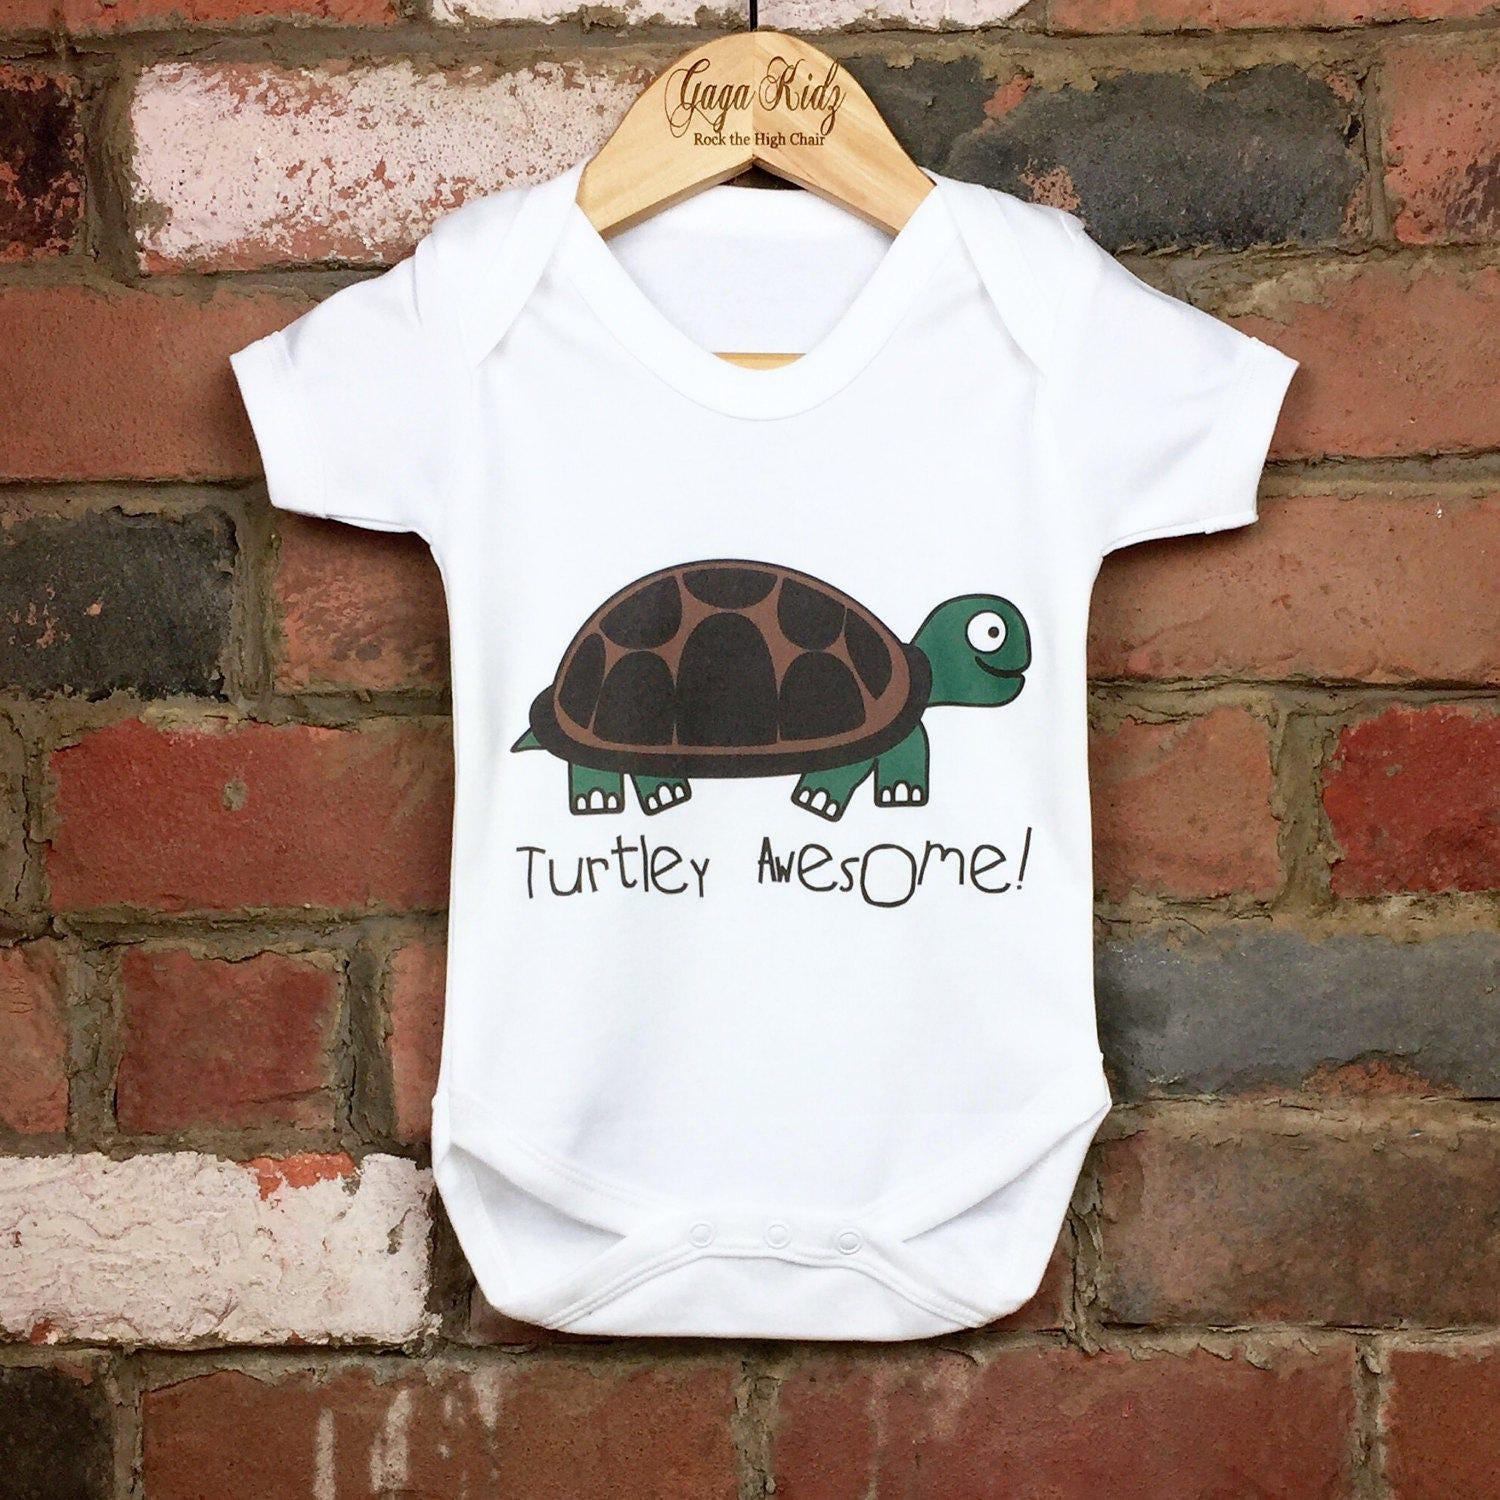 Turtley Awesome Baby Bodysuits Baby e Piece Suit Funny